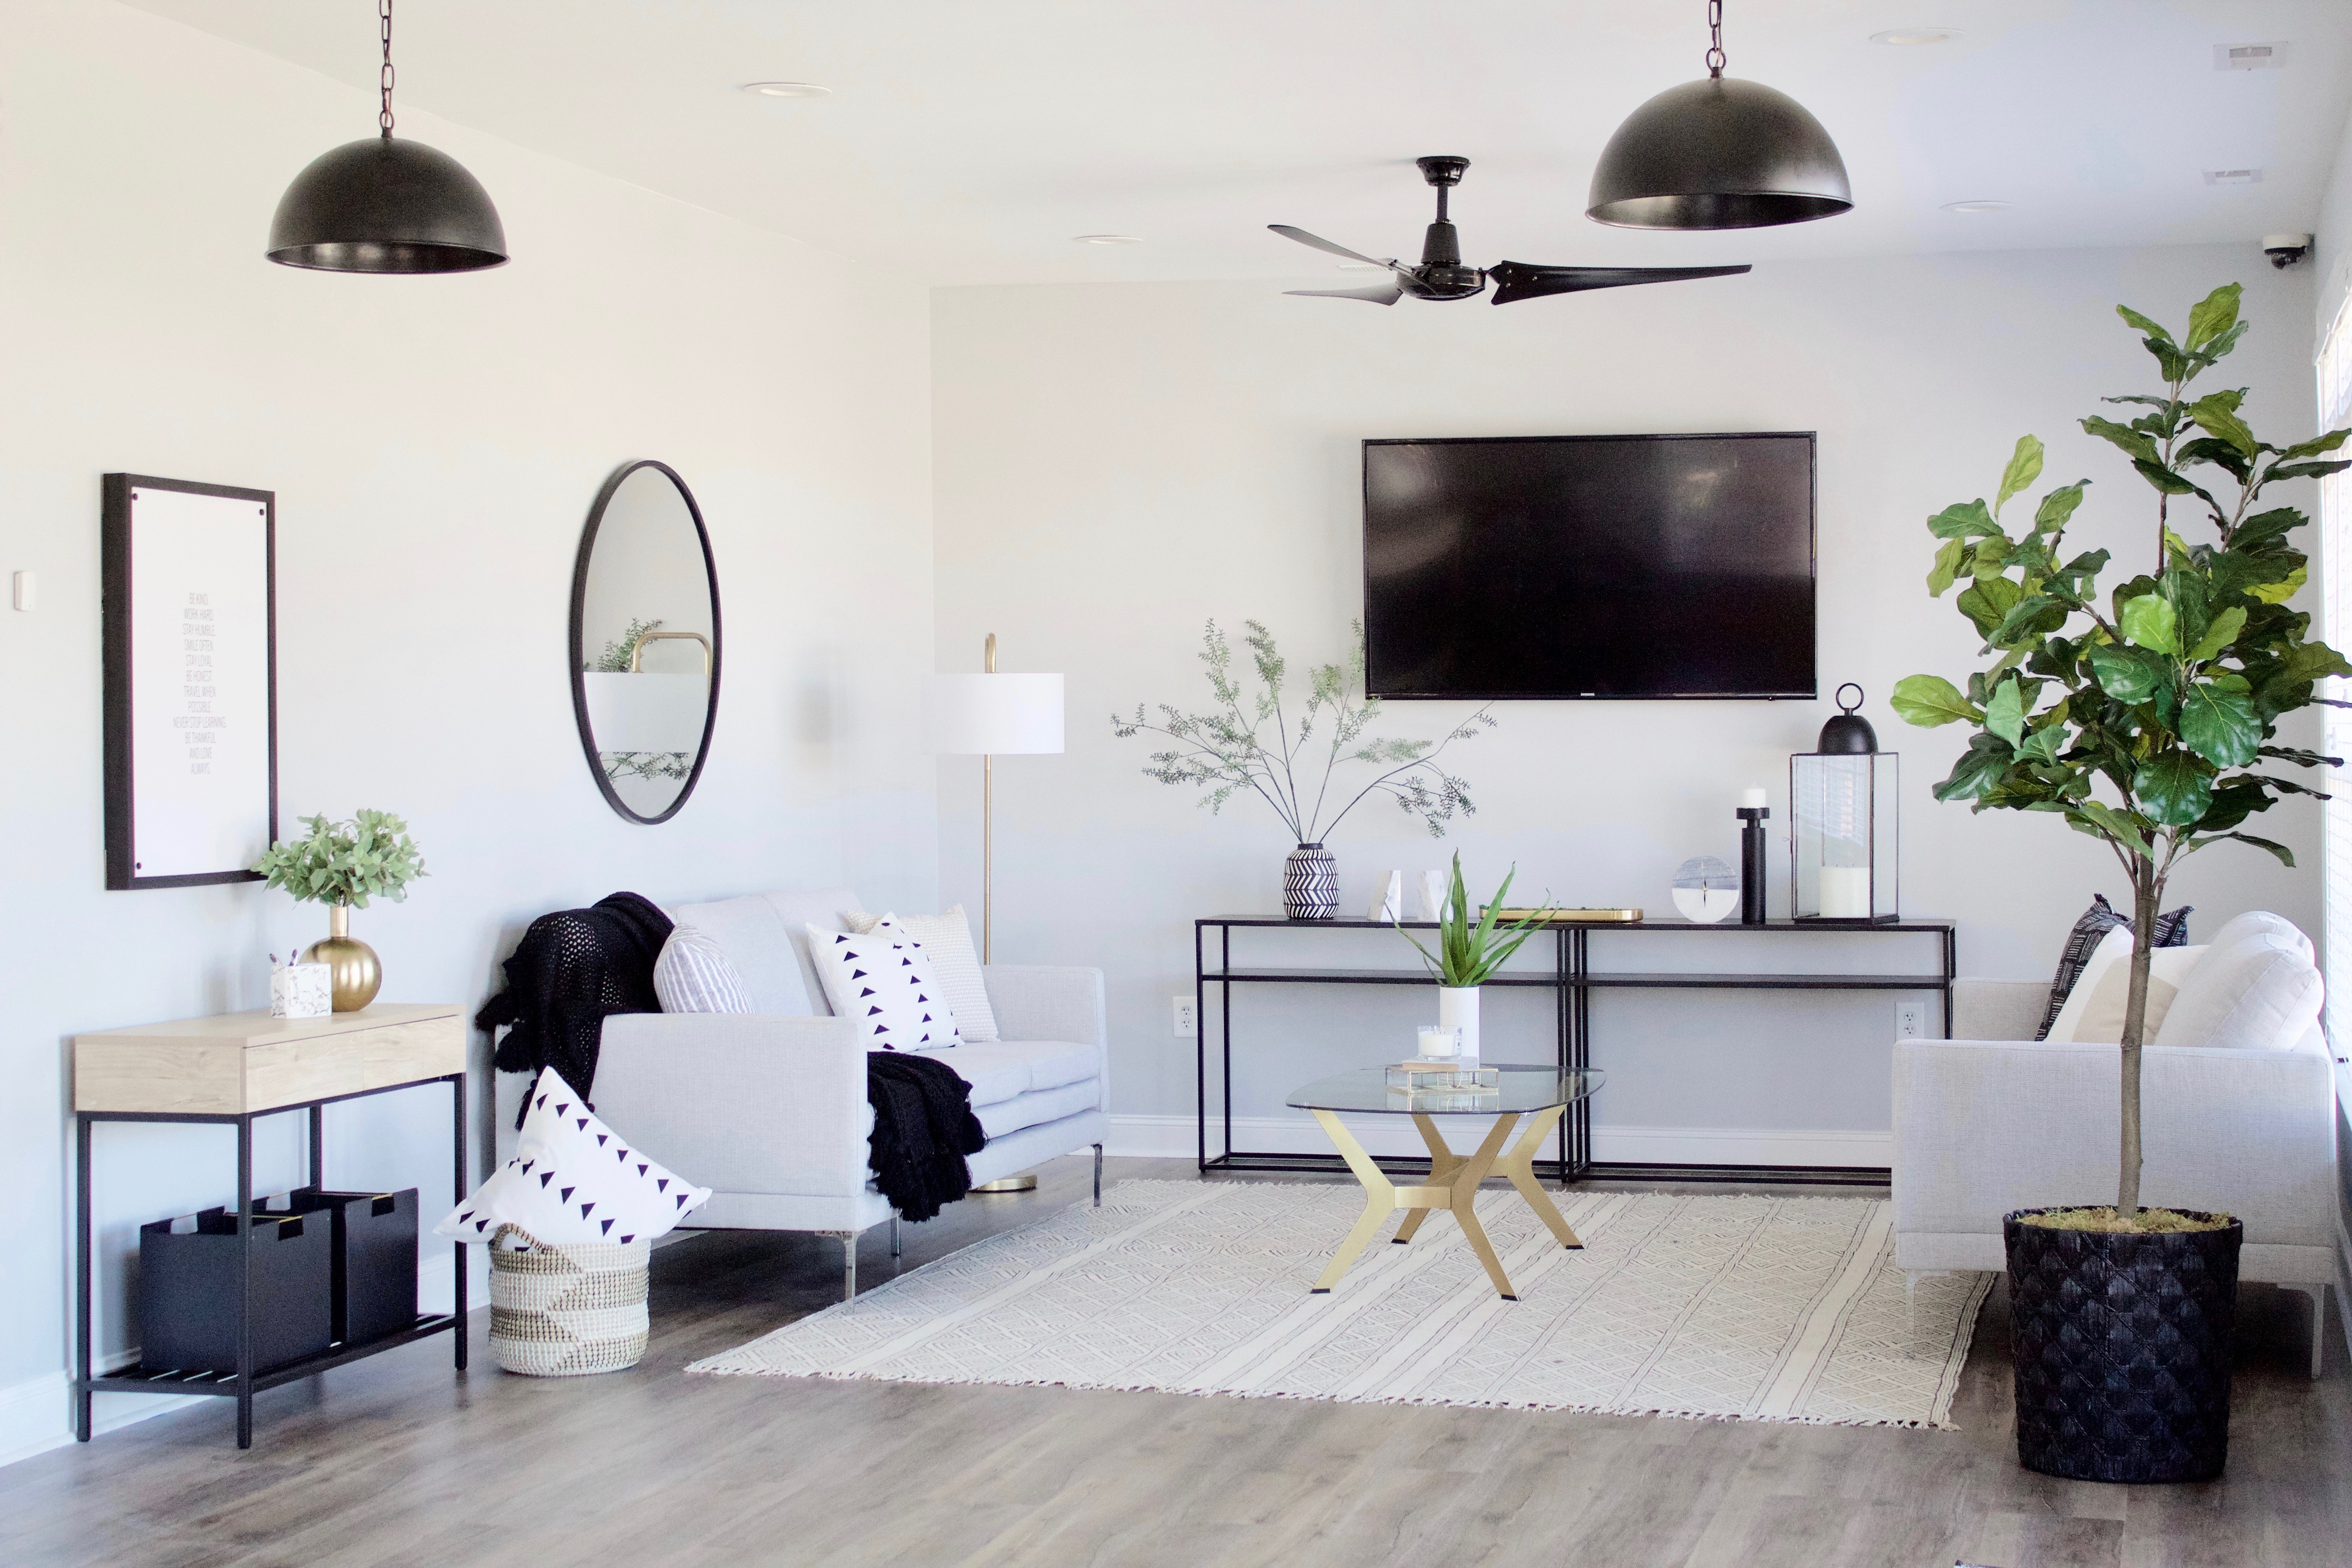 A bright modern lounge featuring light grey walls and sofas accented by black details and light woods.